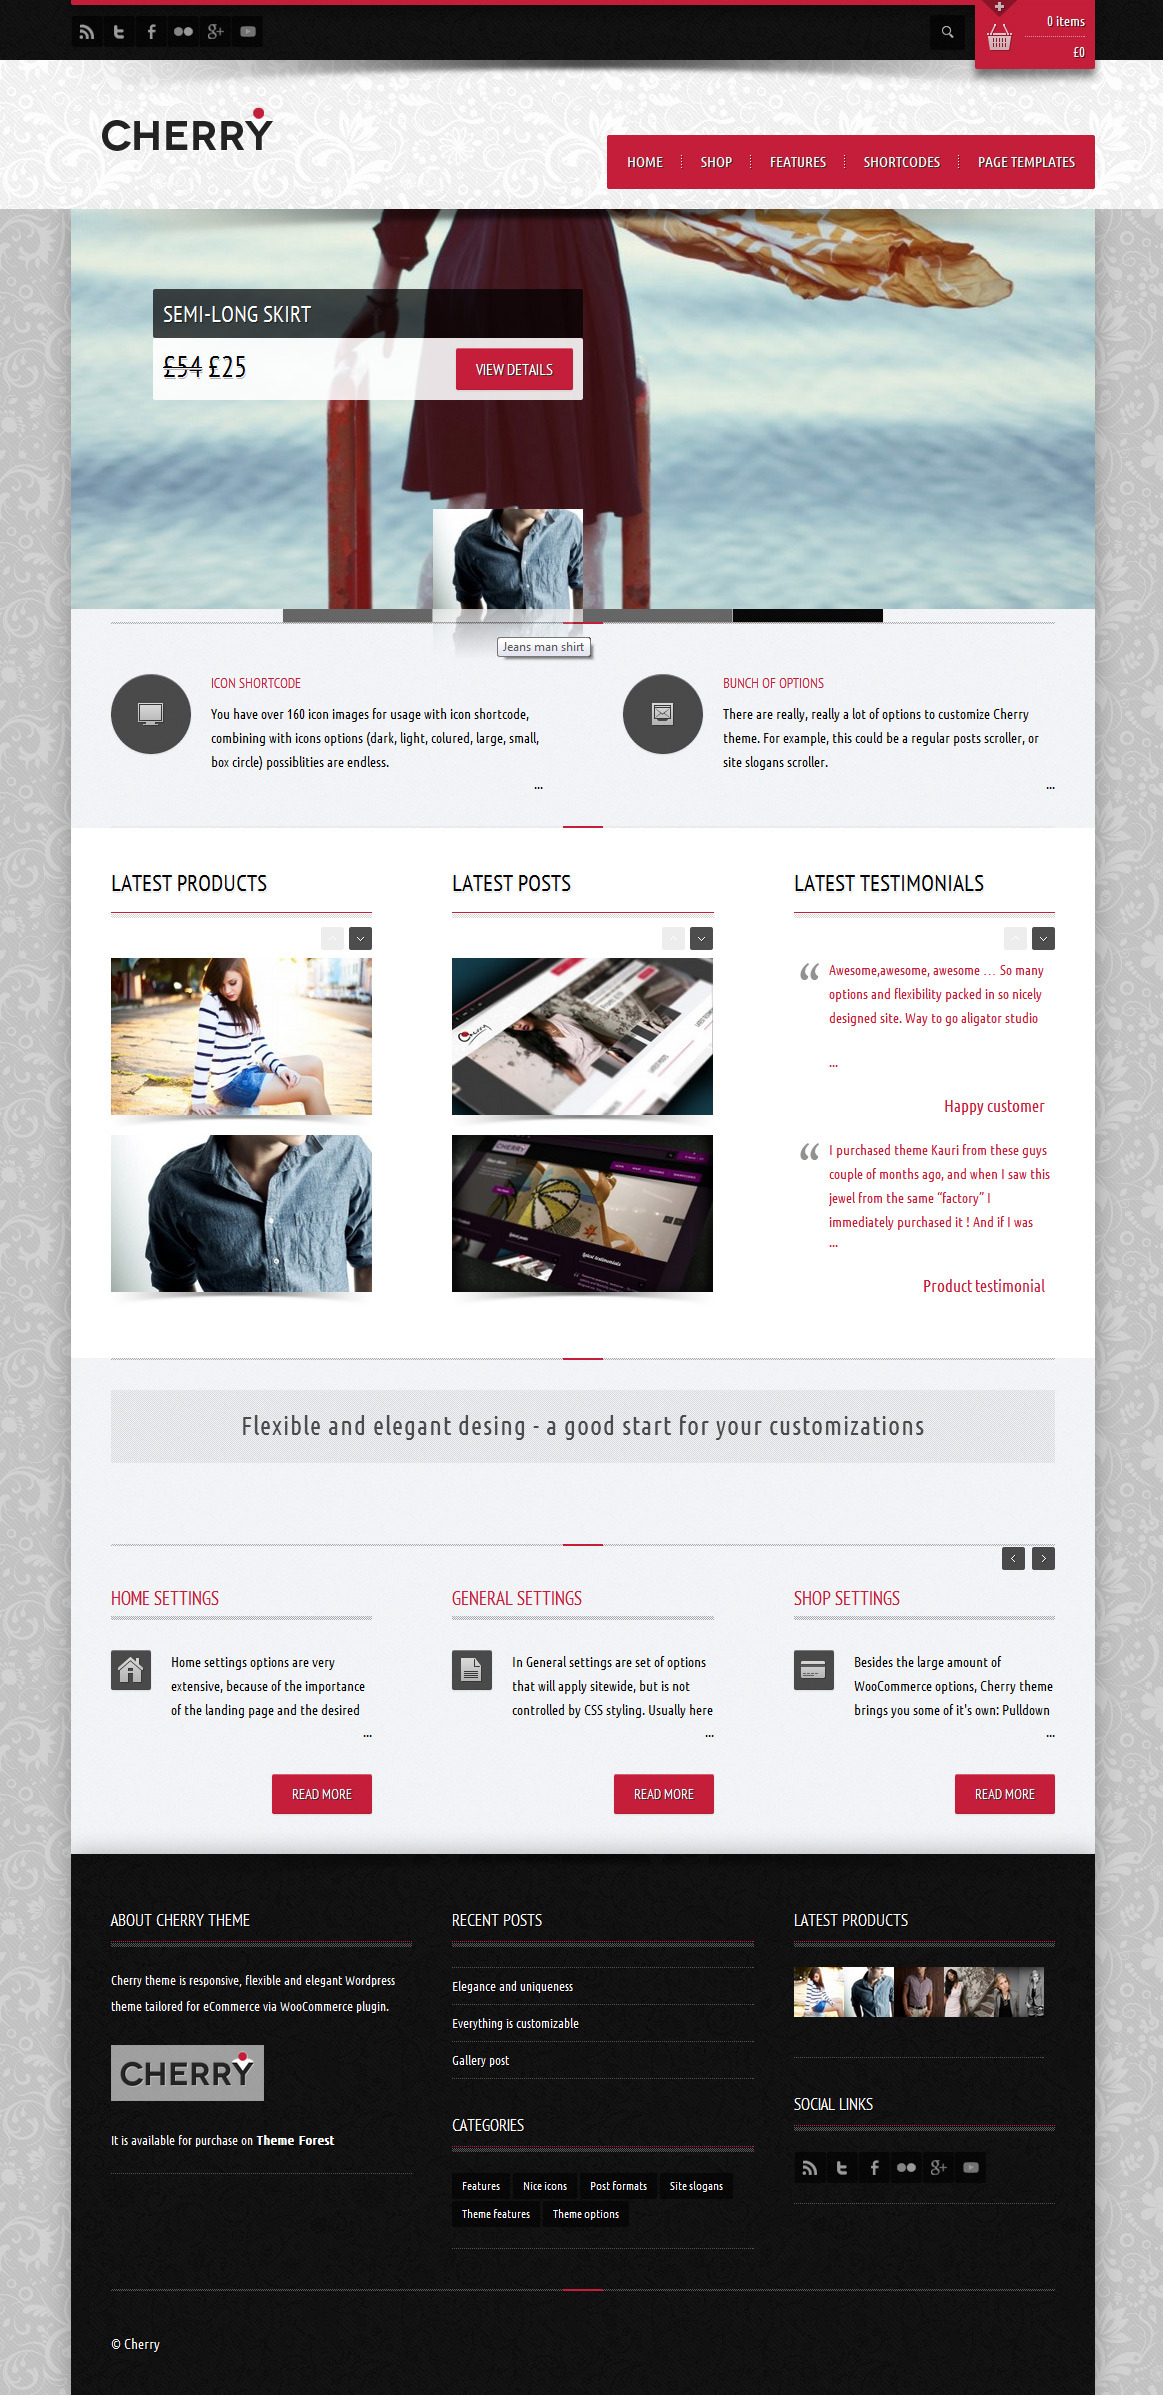 Cherry - responsive e-commerce theme for WP